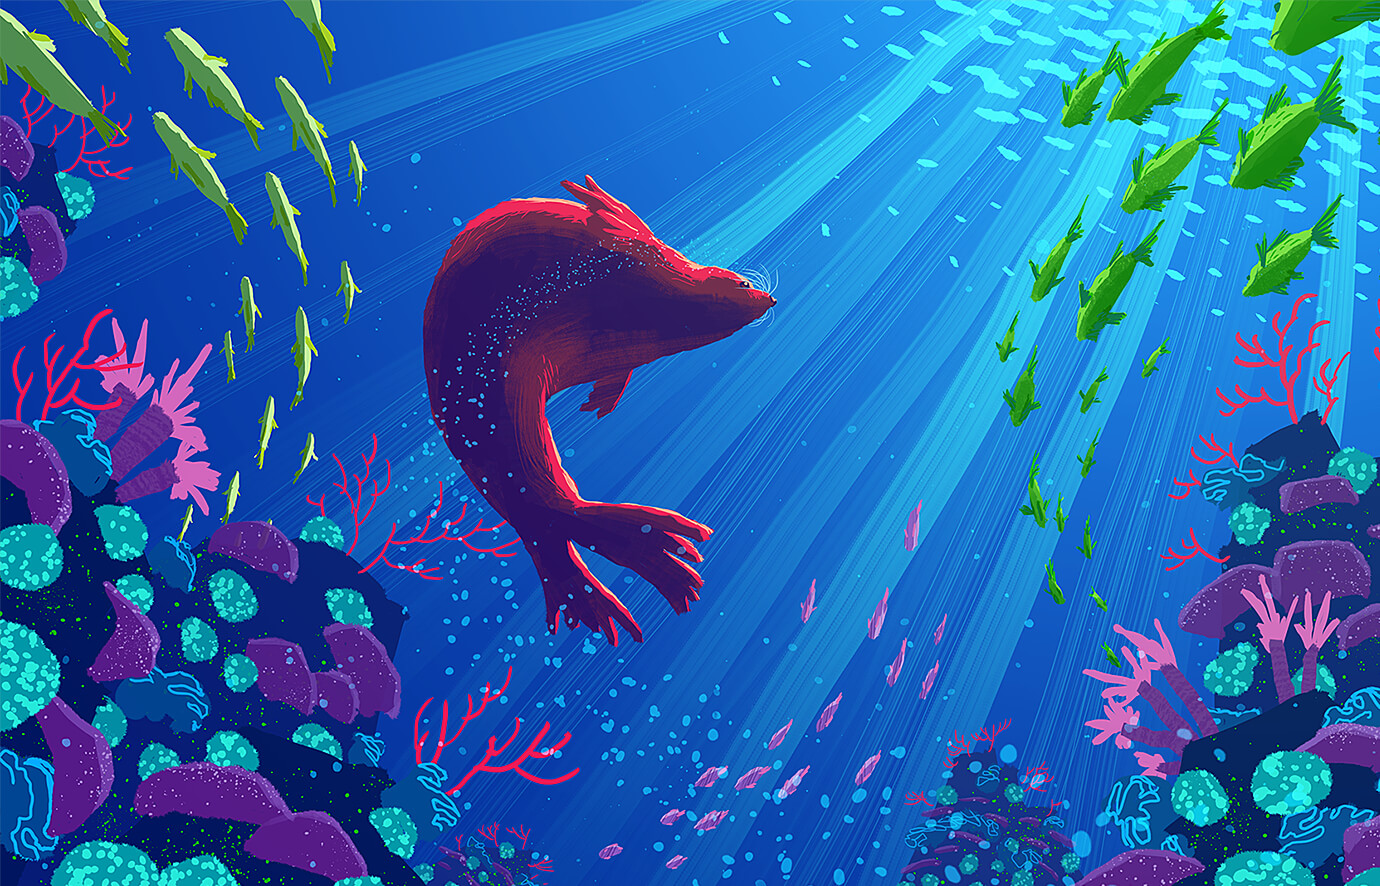 Series of colorful animal animations for Nat Geo Wild